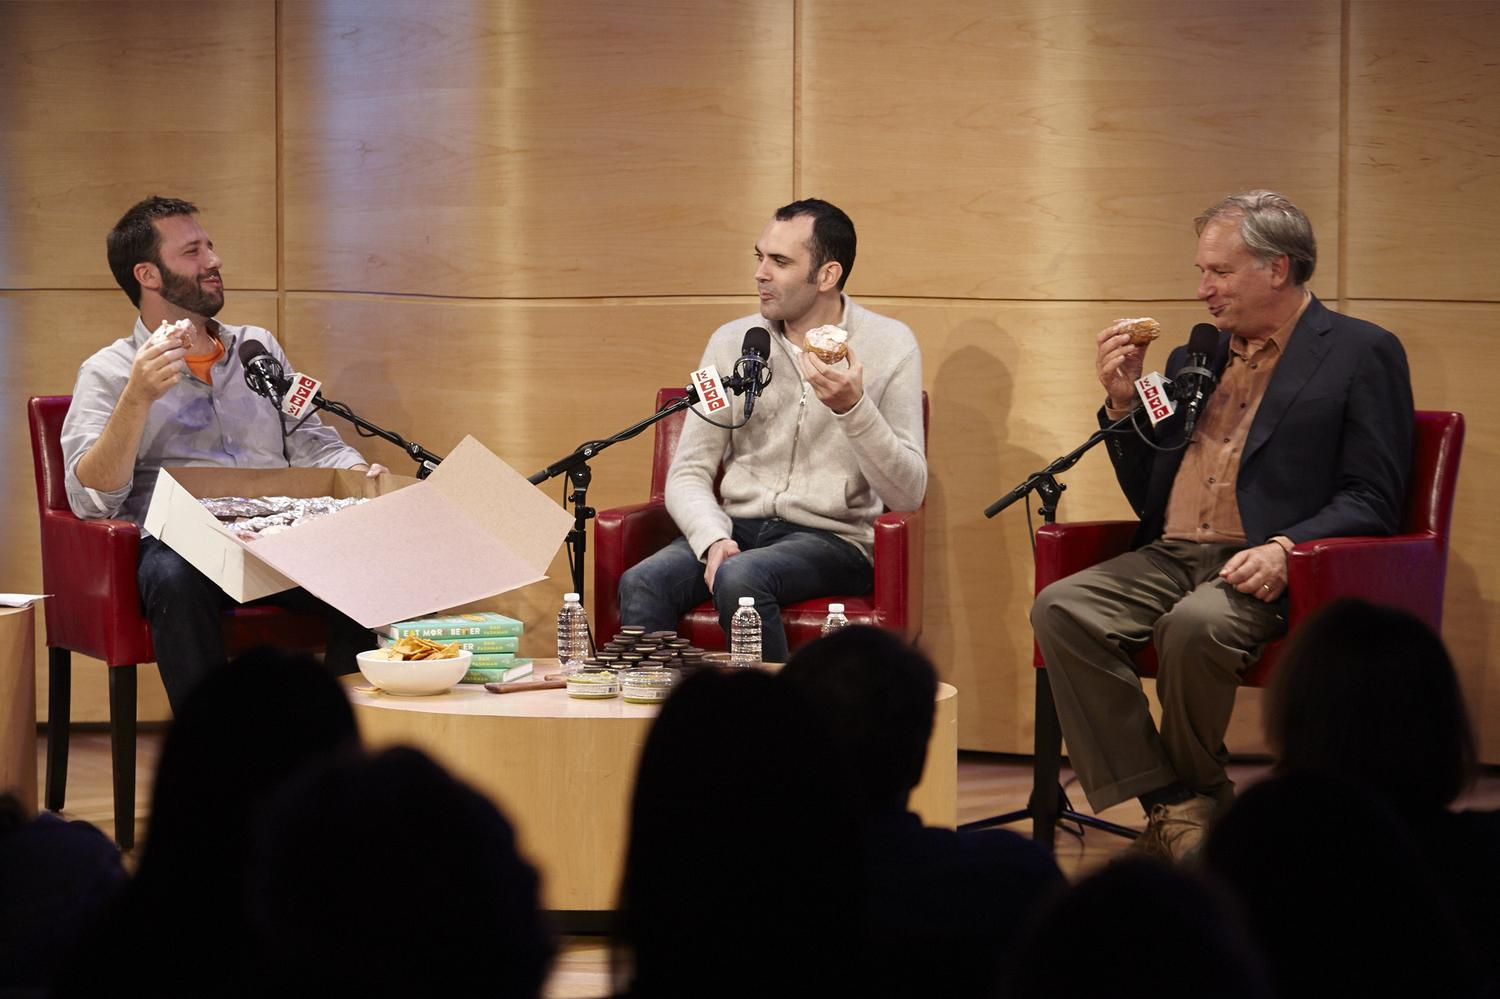 On-Demand Video: The Sporkful with Amy Sedaris, Dominique Ansel and Robert Krulwich